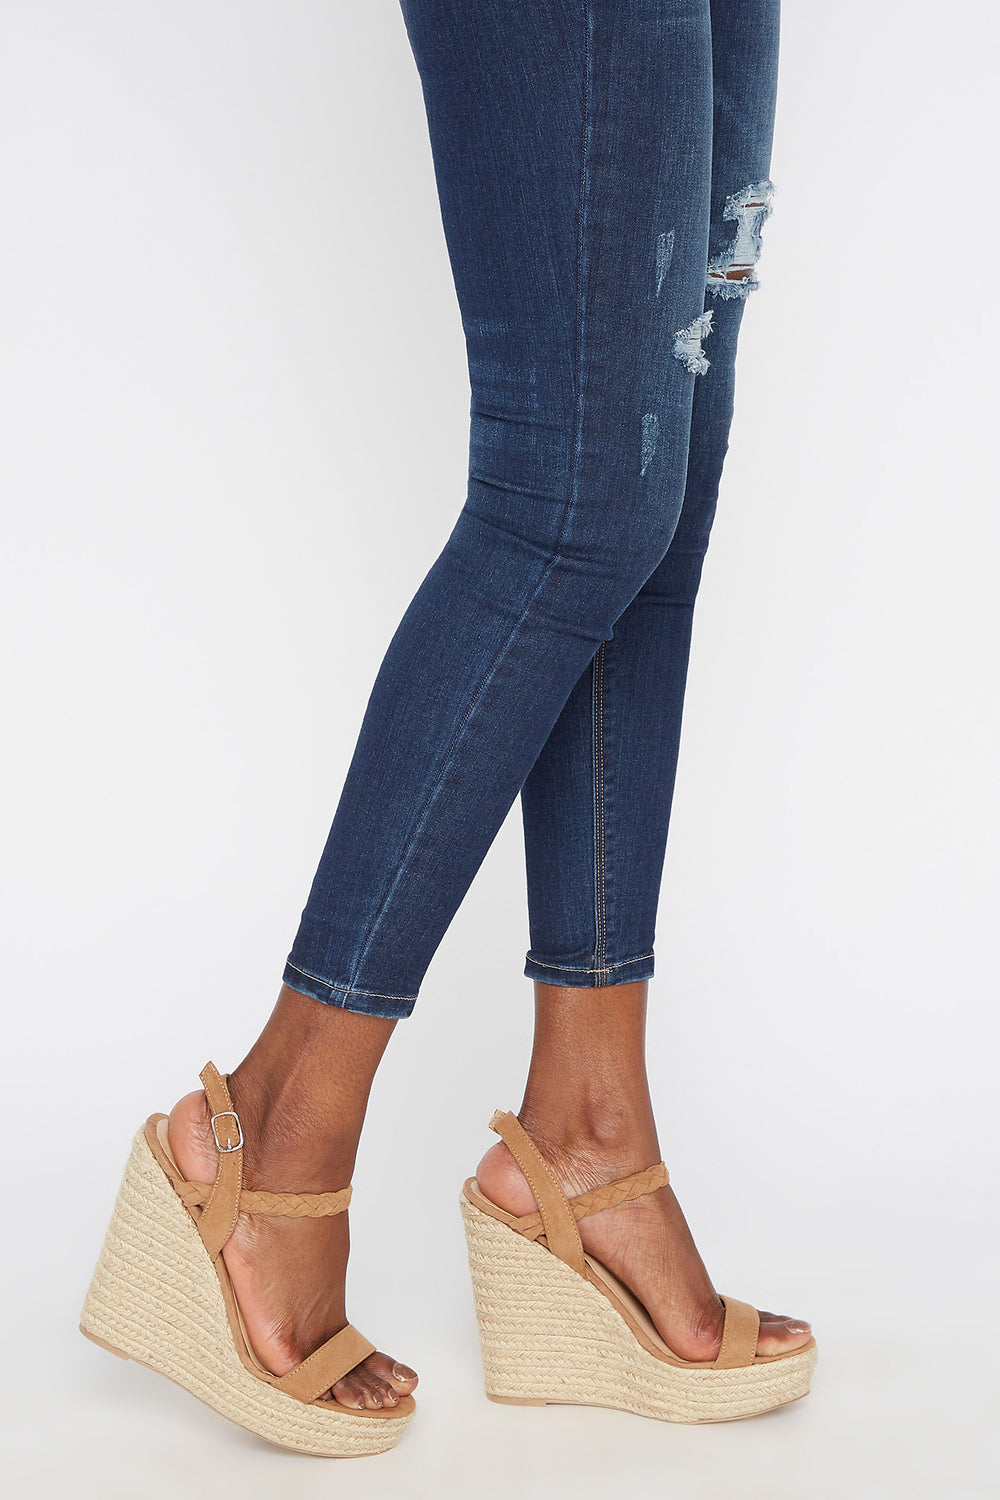 Woven Espadrille Wedge Sandal Natural